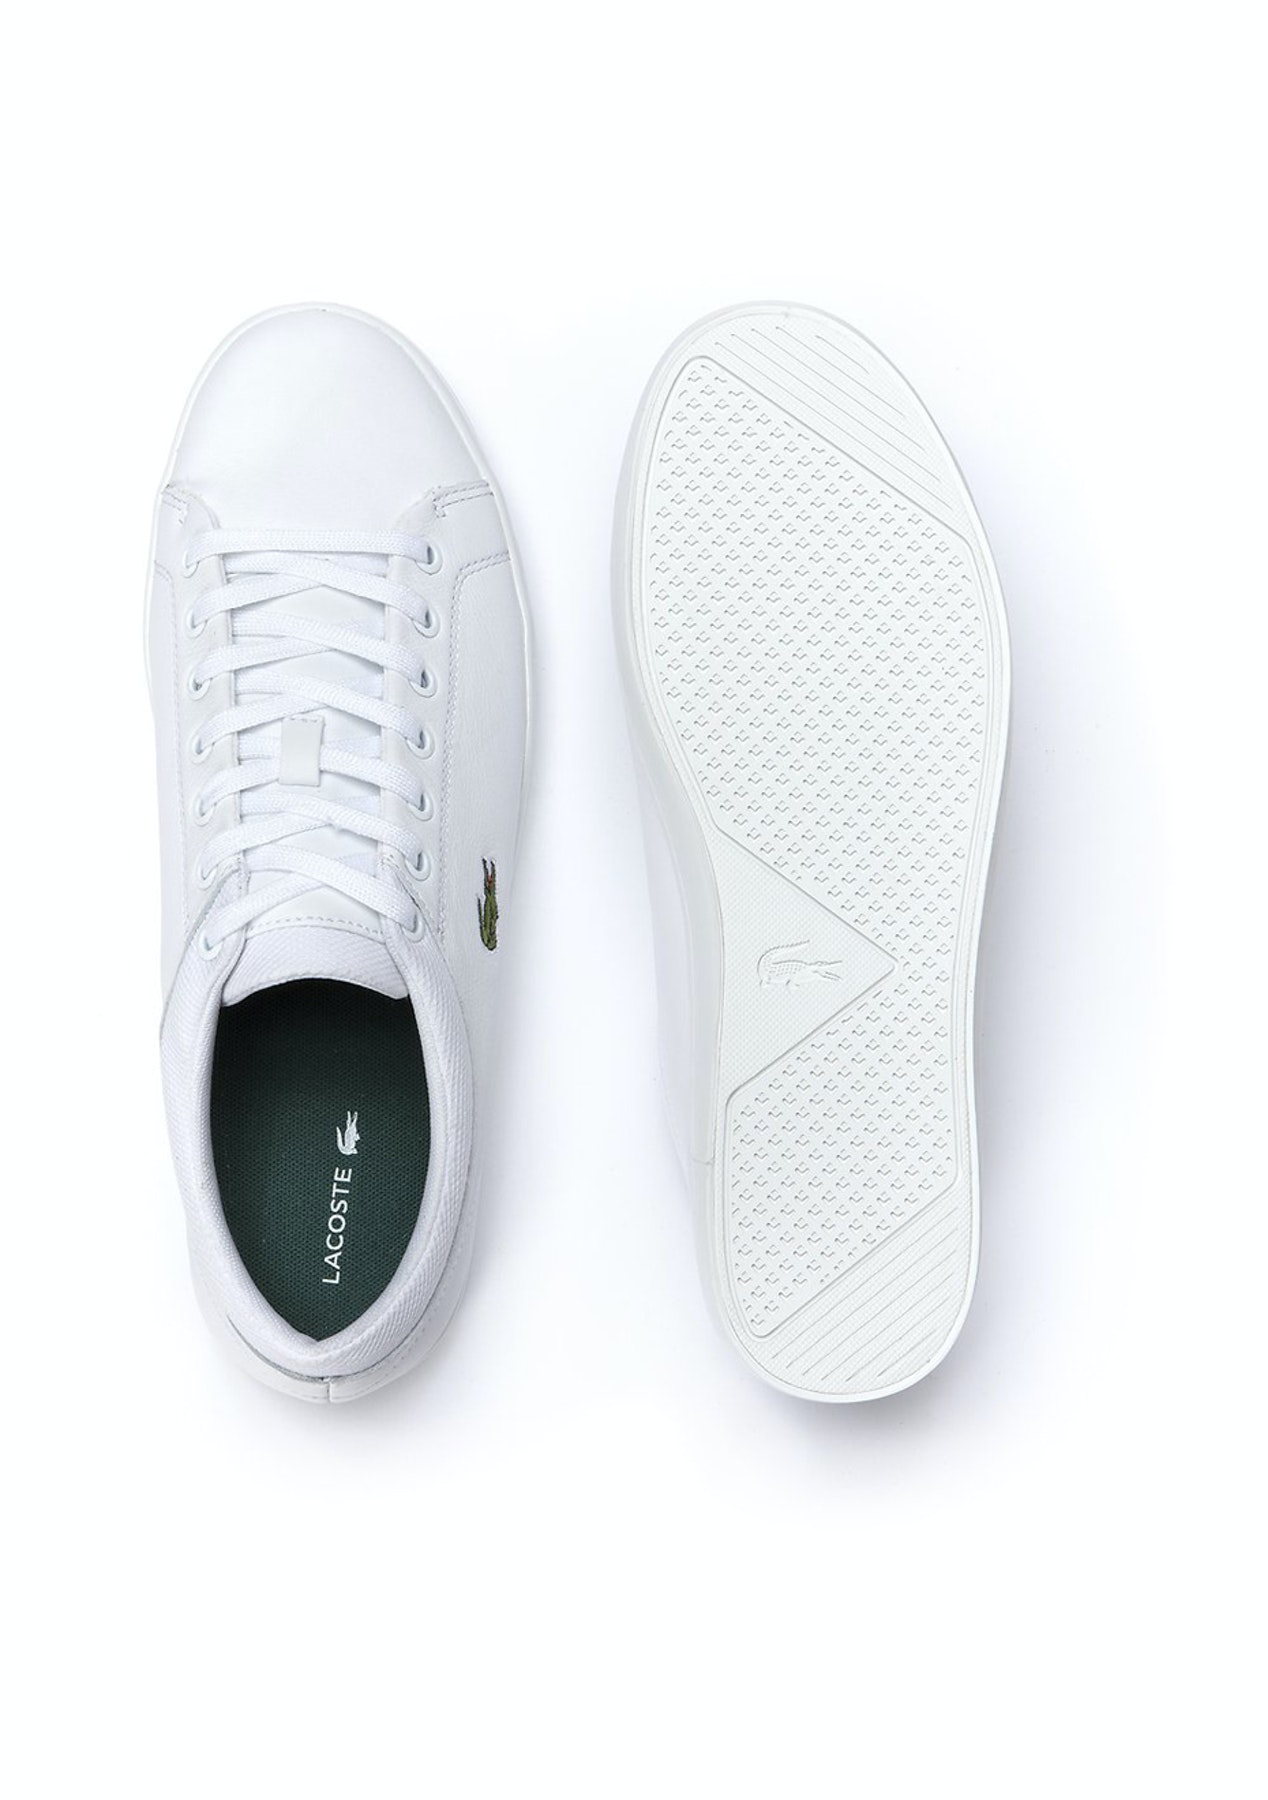 ed2bf35904f8b Mens Lacoste - Straightset Spt 1161 Spm - White - Stylish Gifts for Dad -  Onceit